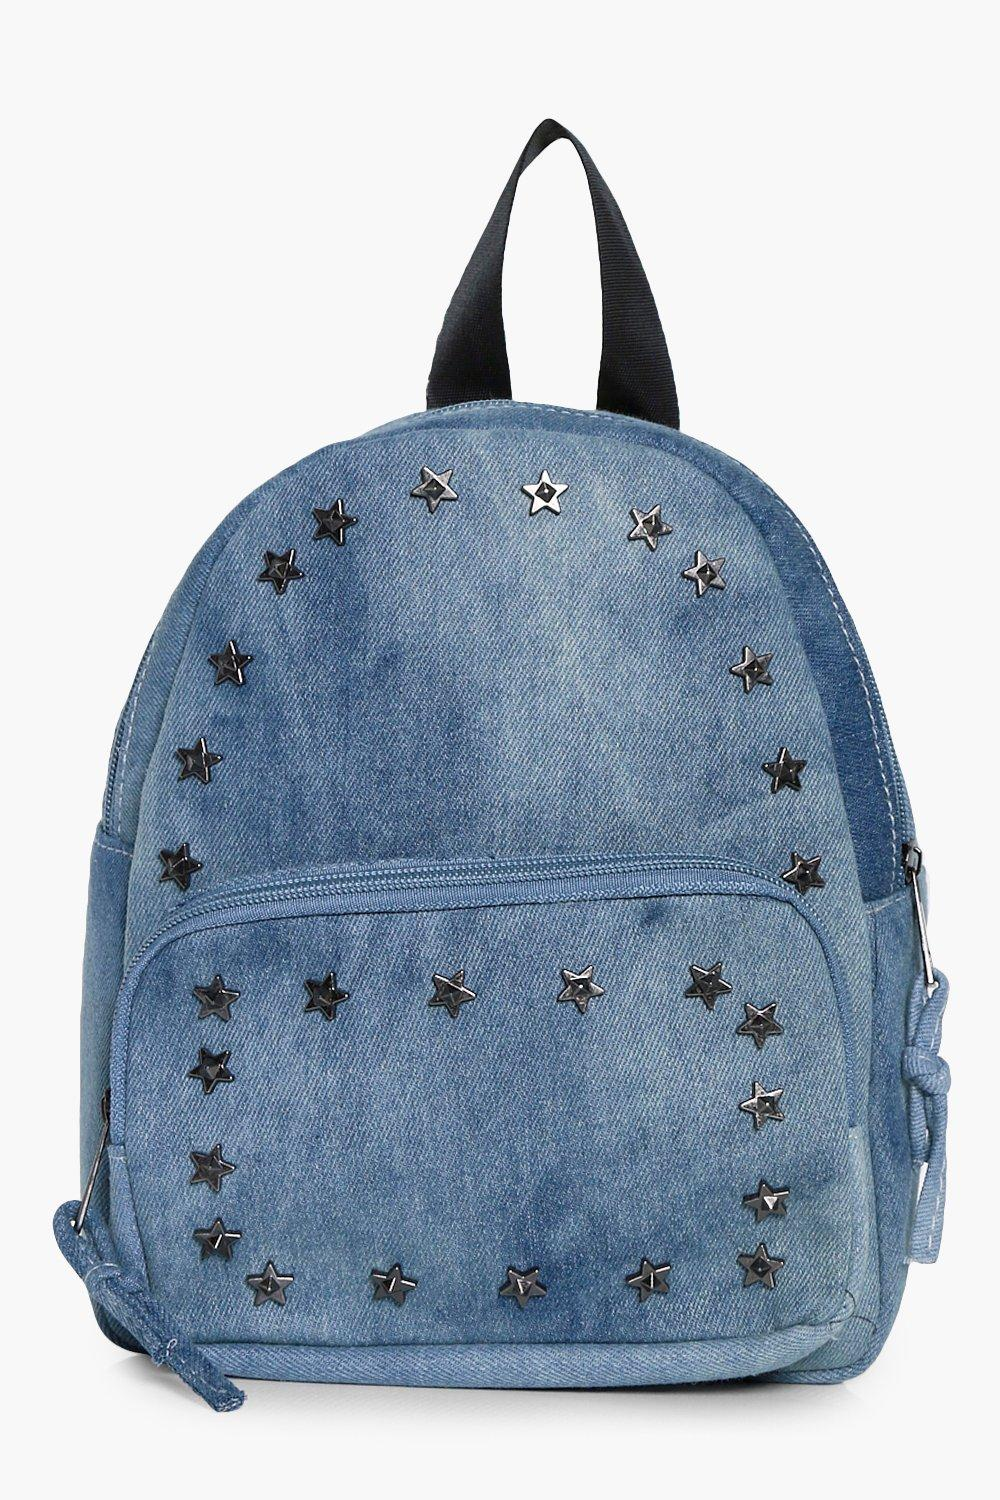 Denim Star Stud Rucksack - blue - Elena Denim Star